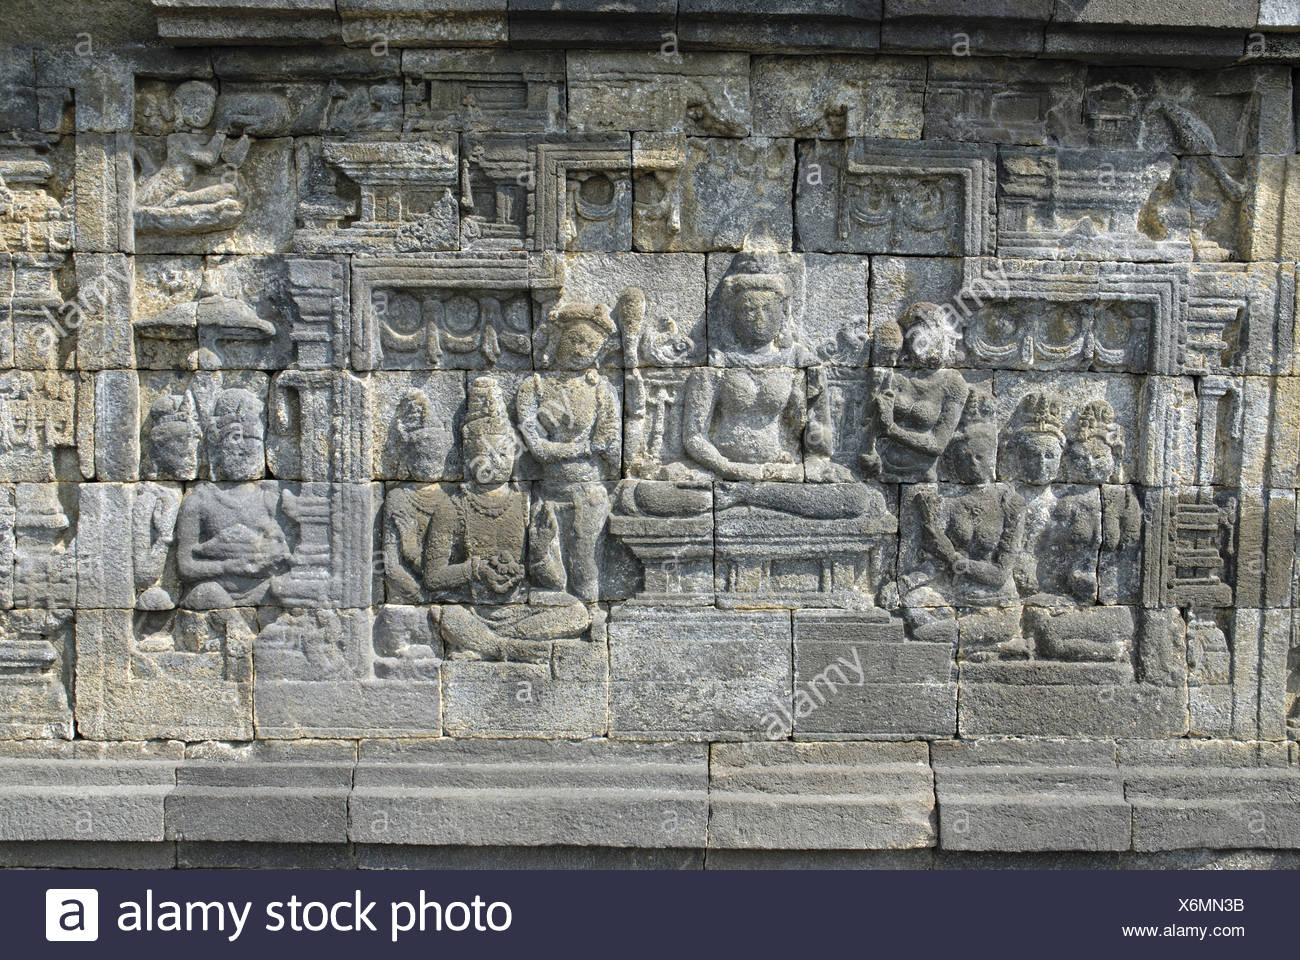 Indonesia-Java-Borobudur, Goddess seated on lotus throne with attendants and  Devotees, closer-view. - Stock Image